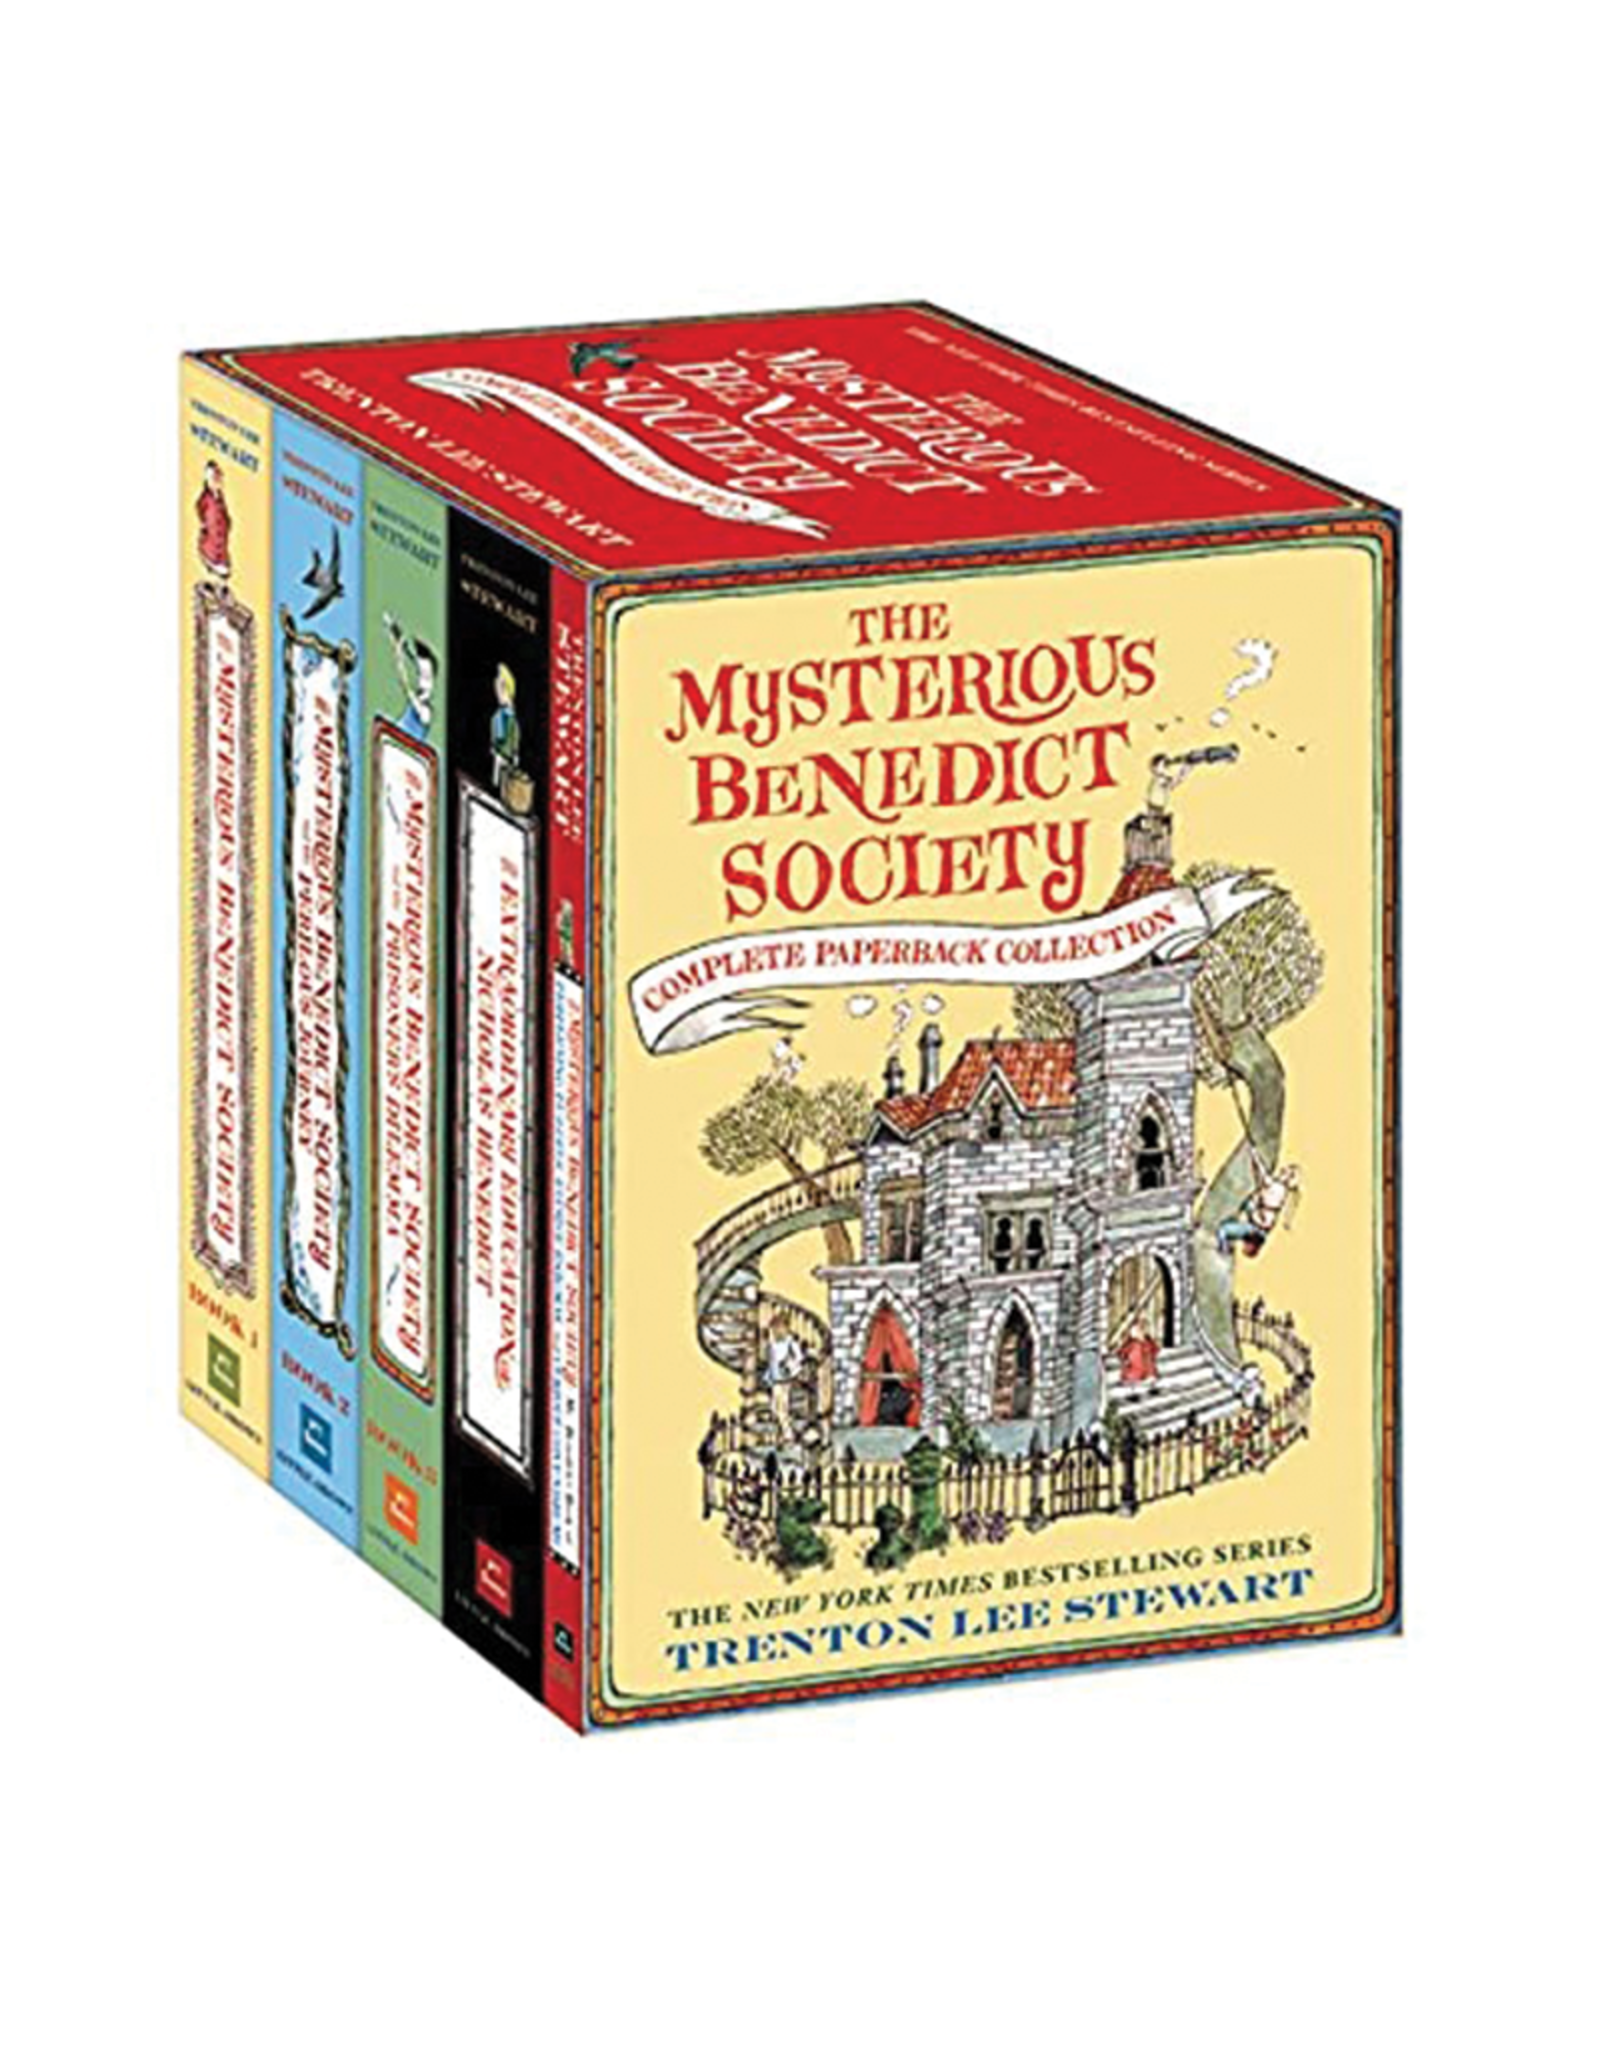 The Mysterious Benedict Society Boxed Set